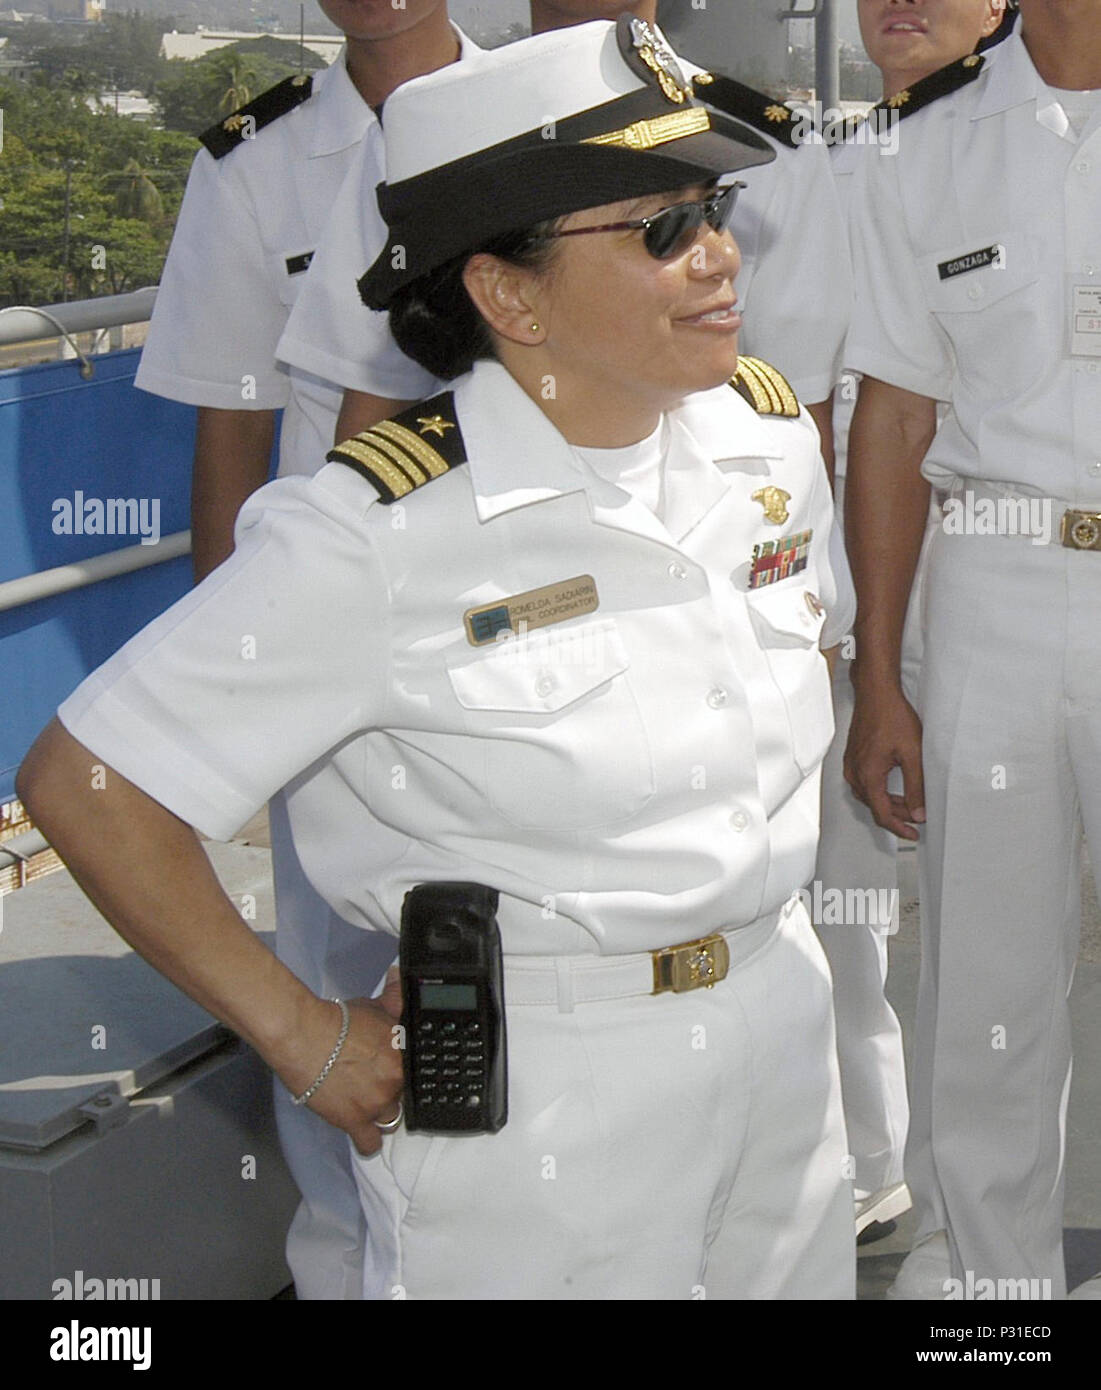 Bay, Republic of the Philippines (Apr. 24, 2004) - Lt. Cmdr. Romelda Sadiarin gives a tour of USS Coronado (AGF 11) to students from the Philippine Navy's Naval Education and Training Command. Coronado arrived for a scheduled port visit. The port visit gives the more than 450 Sailors, civilian mariners and Seventh Fleet staff members embarked aboard Coronado a chance to experience the unique culture of the Philippines, sightsee, and participate in community service projects.  The ship is serving as the temporary command ship for Stock Photo